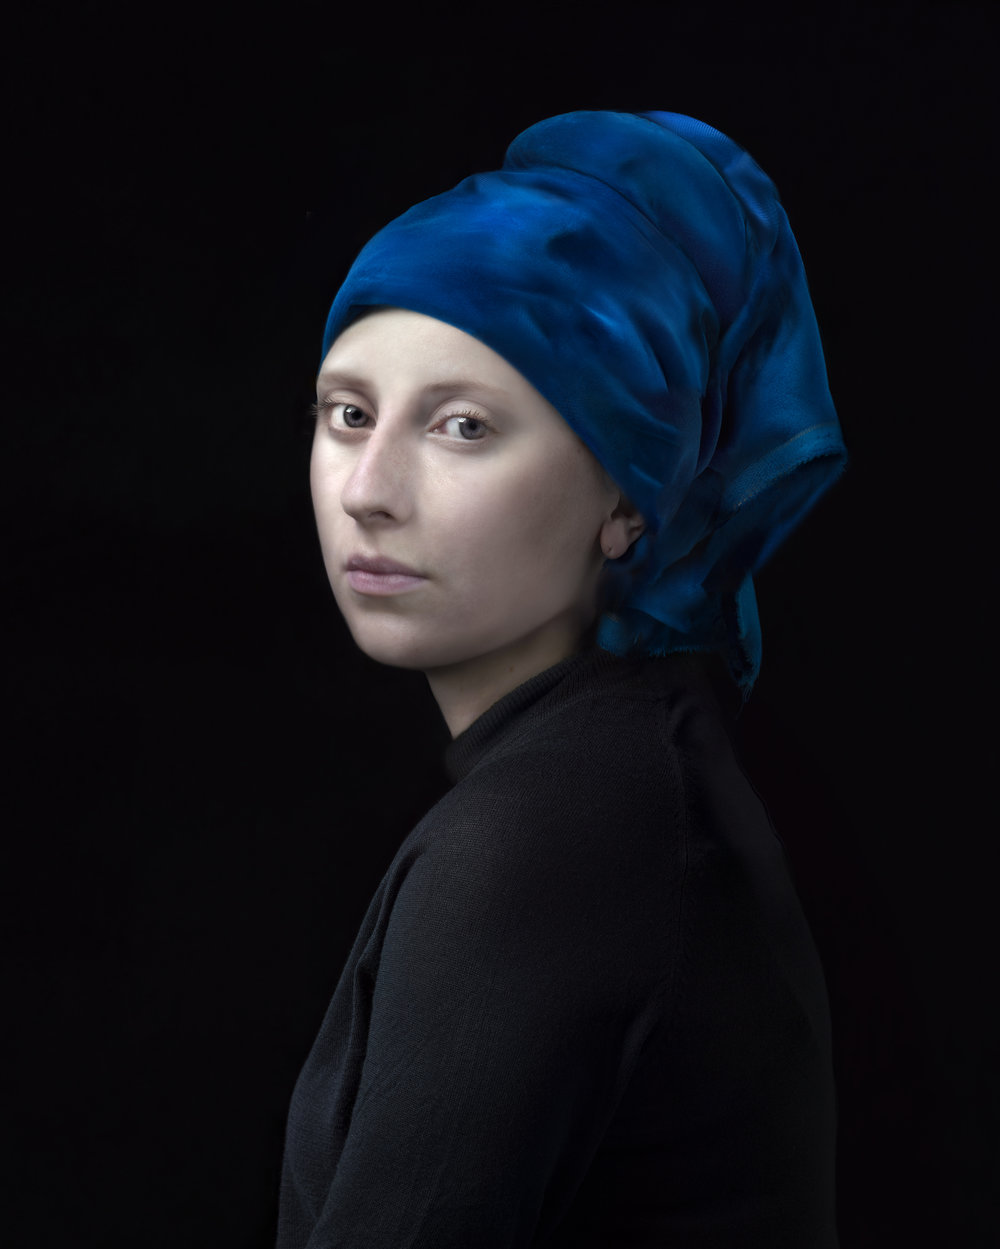 Blue_Turban_20MB (2).jpg